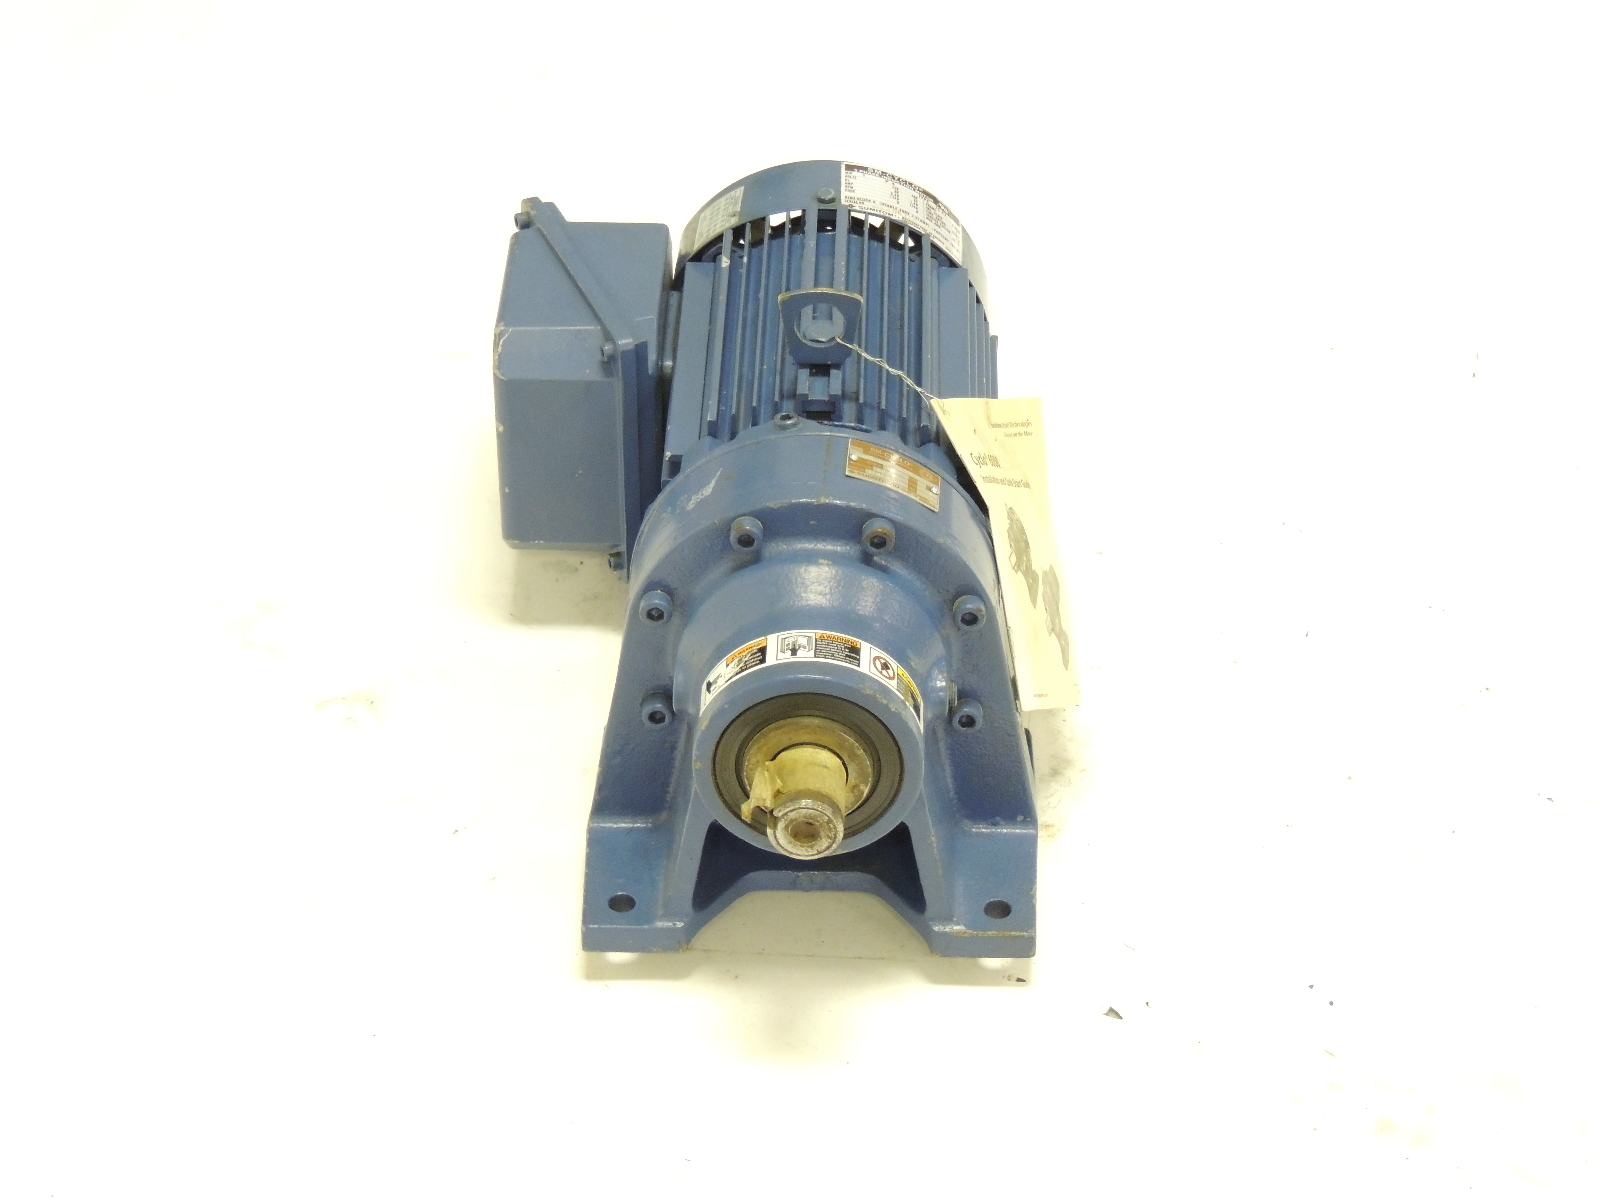 New Sumitomo Sm Cyclo Gear Motor Cnhm1 6100yc 29 1 H P 29 1 Ratio